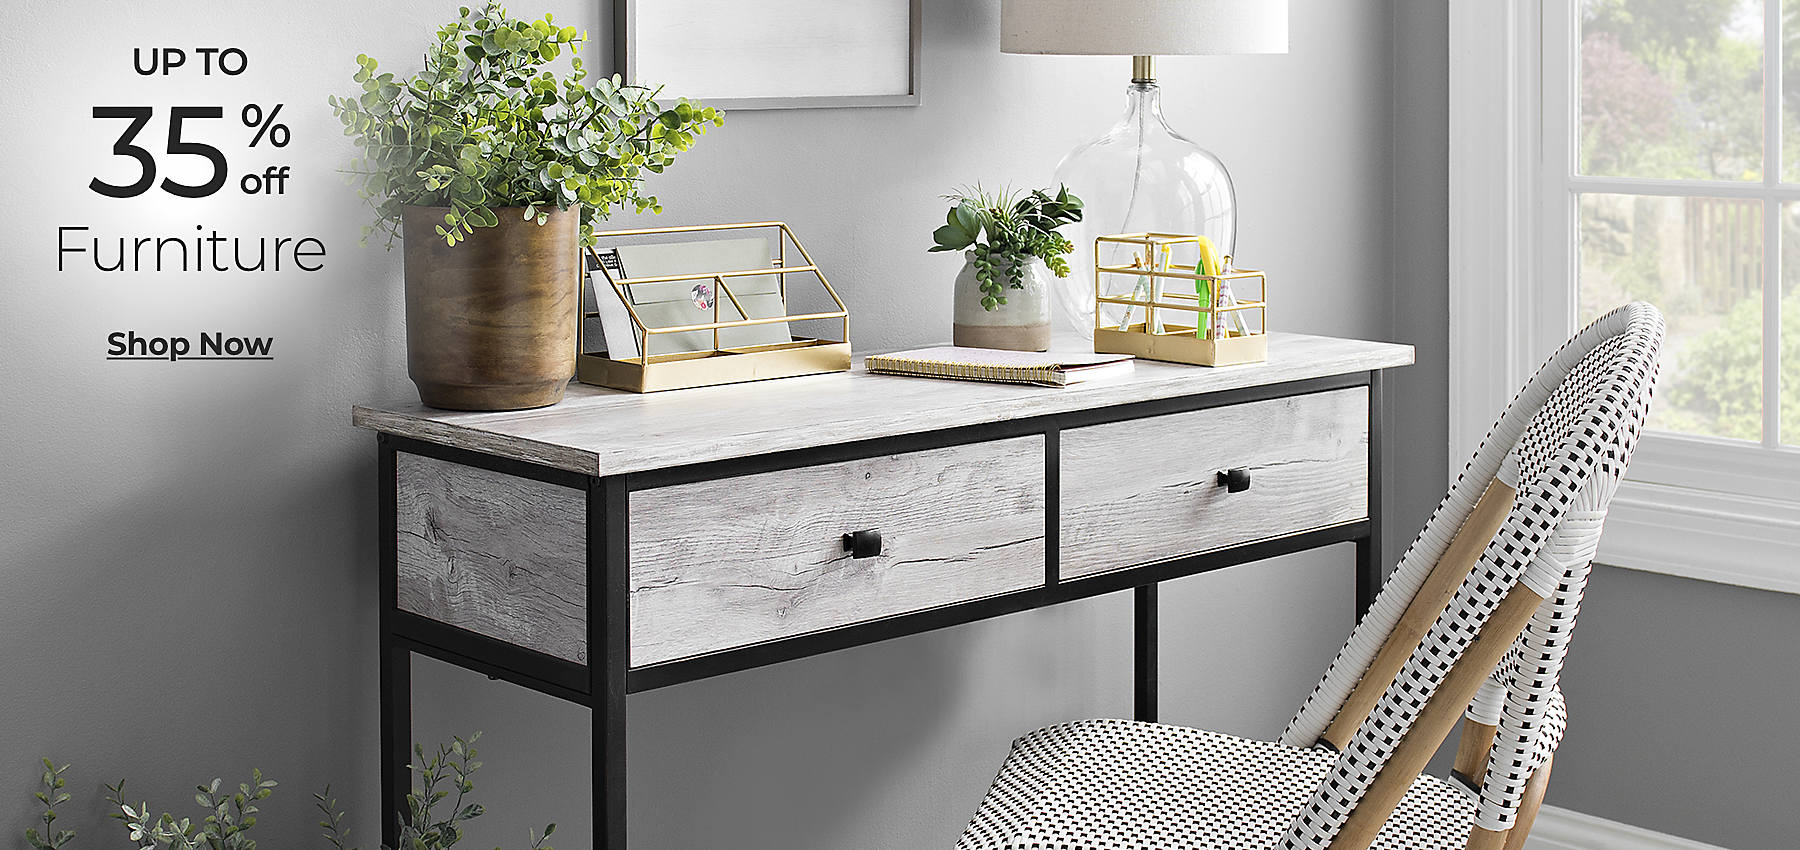 Up to 35% Off - Furniture